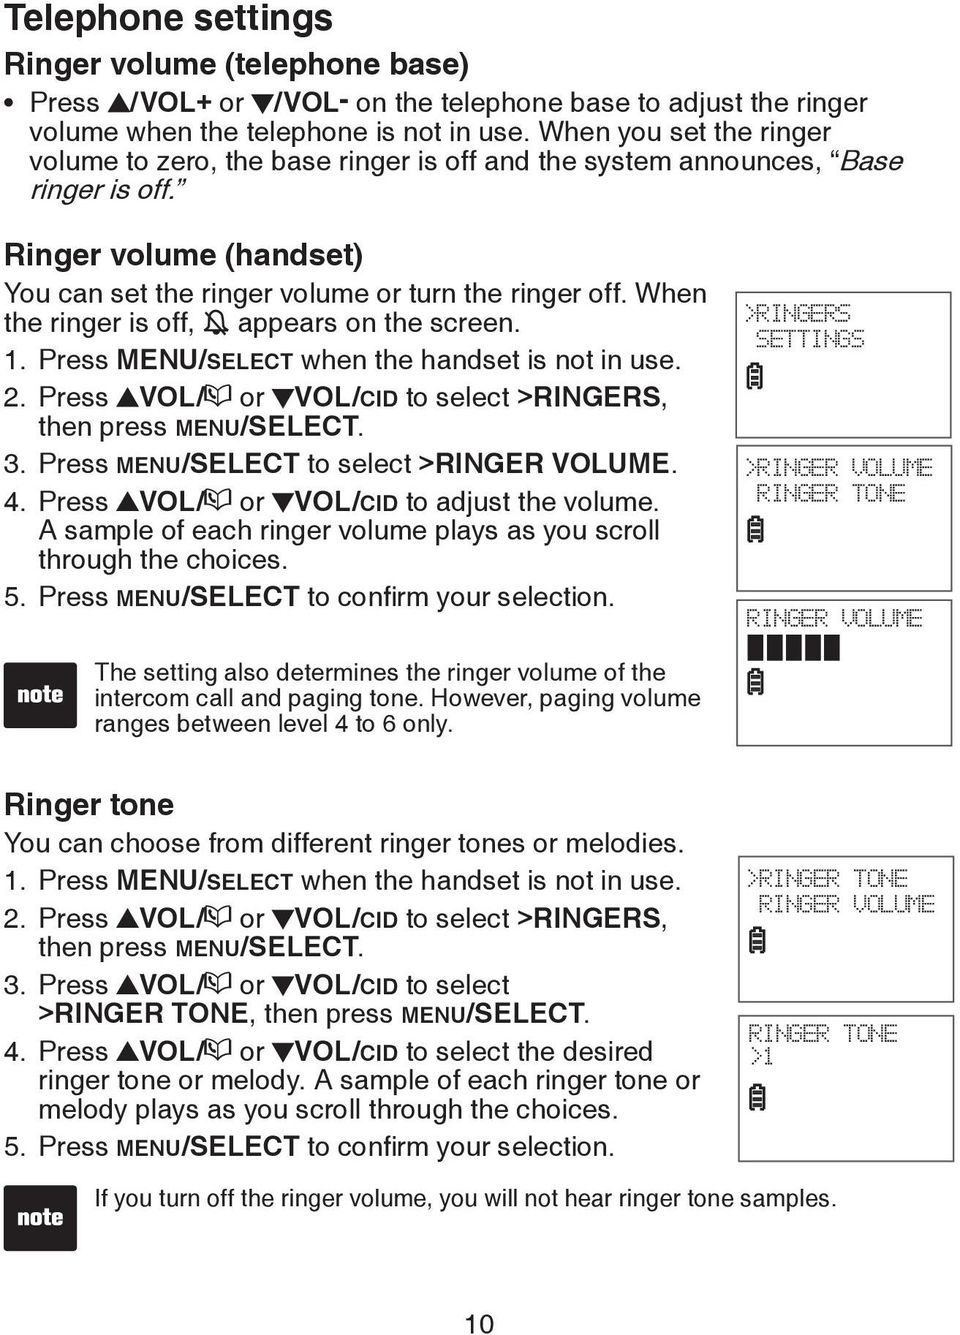 When the ringer is off, appears on the screen. 1. Press MENU/SELECT when the handset is not in use. 2. Press VOL/ or VOL/CID to select >RINGERS, then press MENU/SELECT. 3.